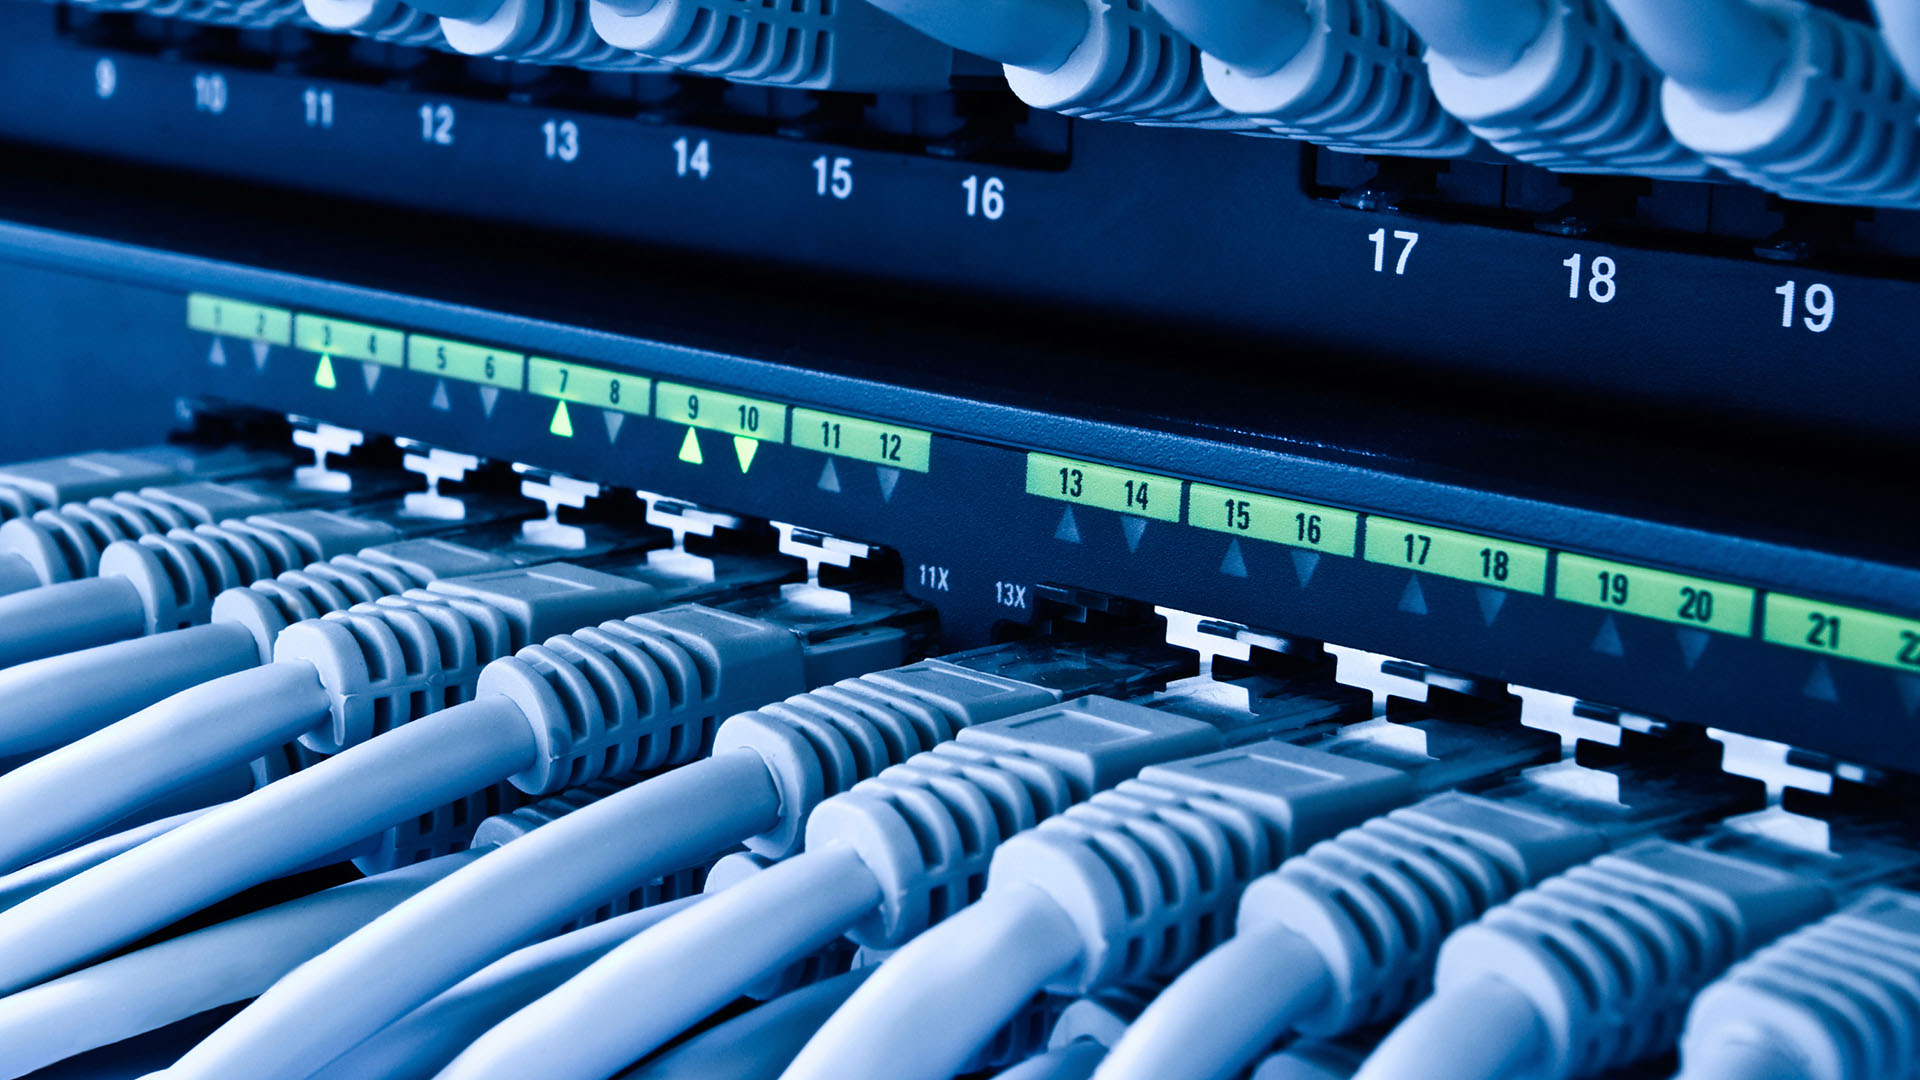 Stanton Kentucky Premier Voice & Data Network Cabling Solutions